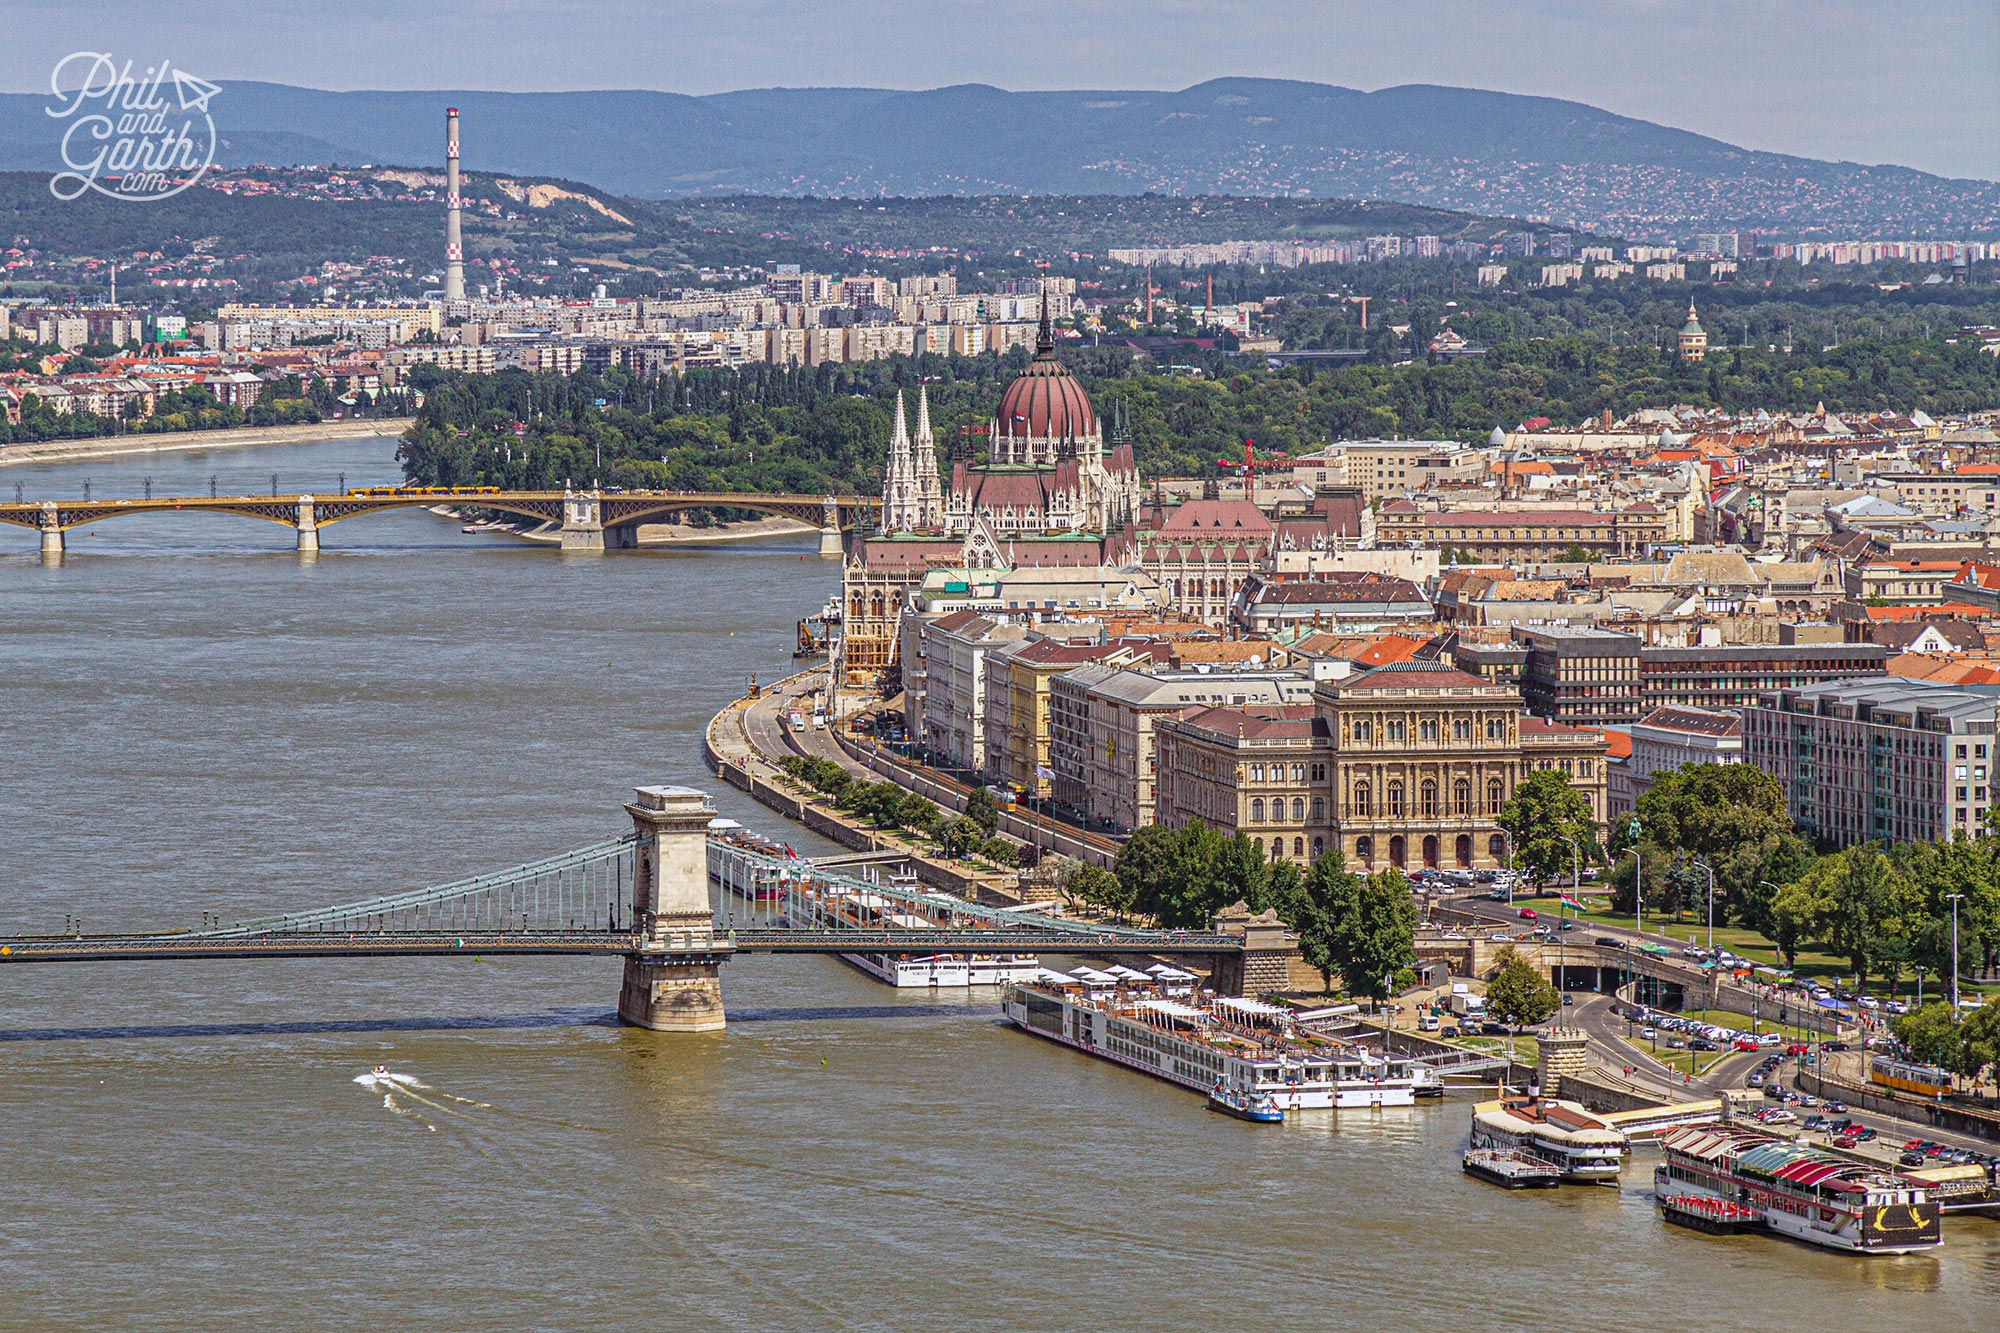 Budapest's two parts of Buda and Pest are joined together by many bridges over the River Danube